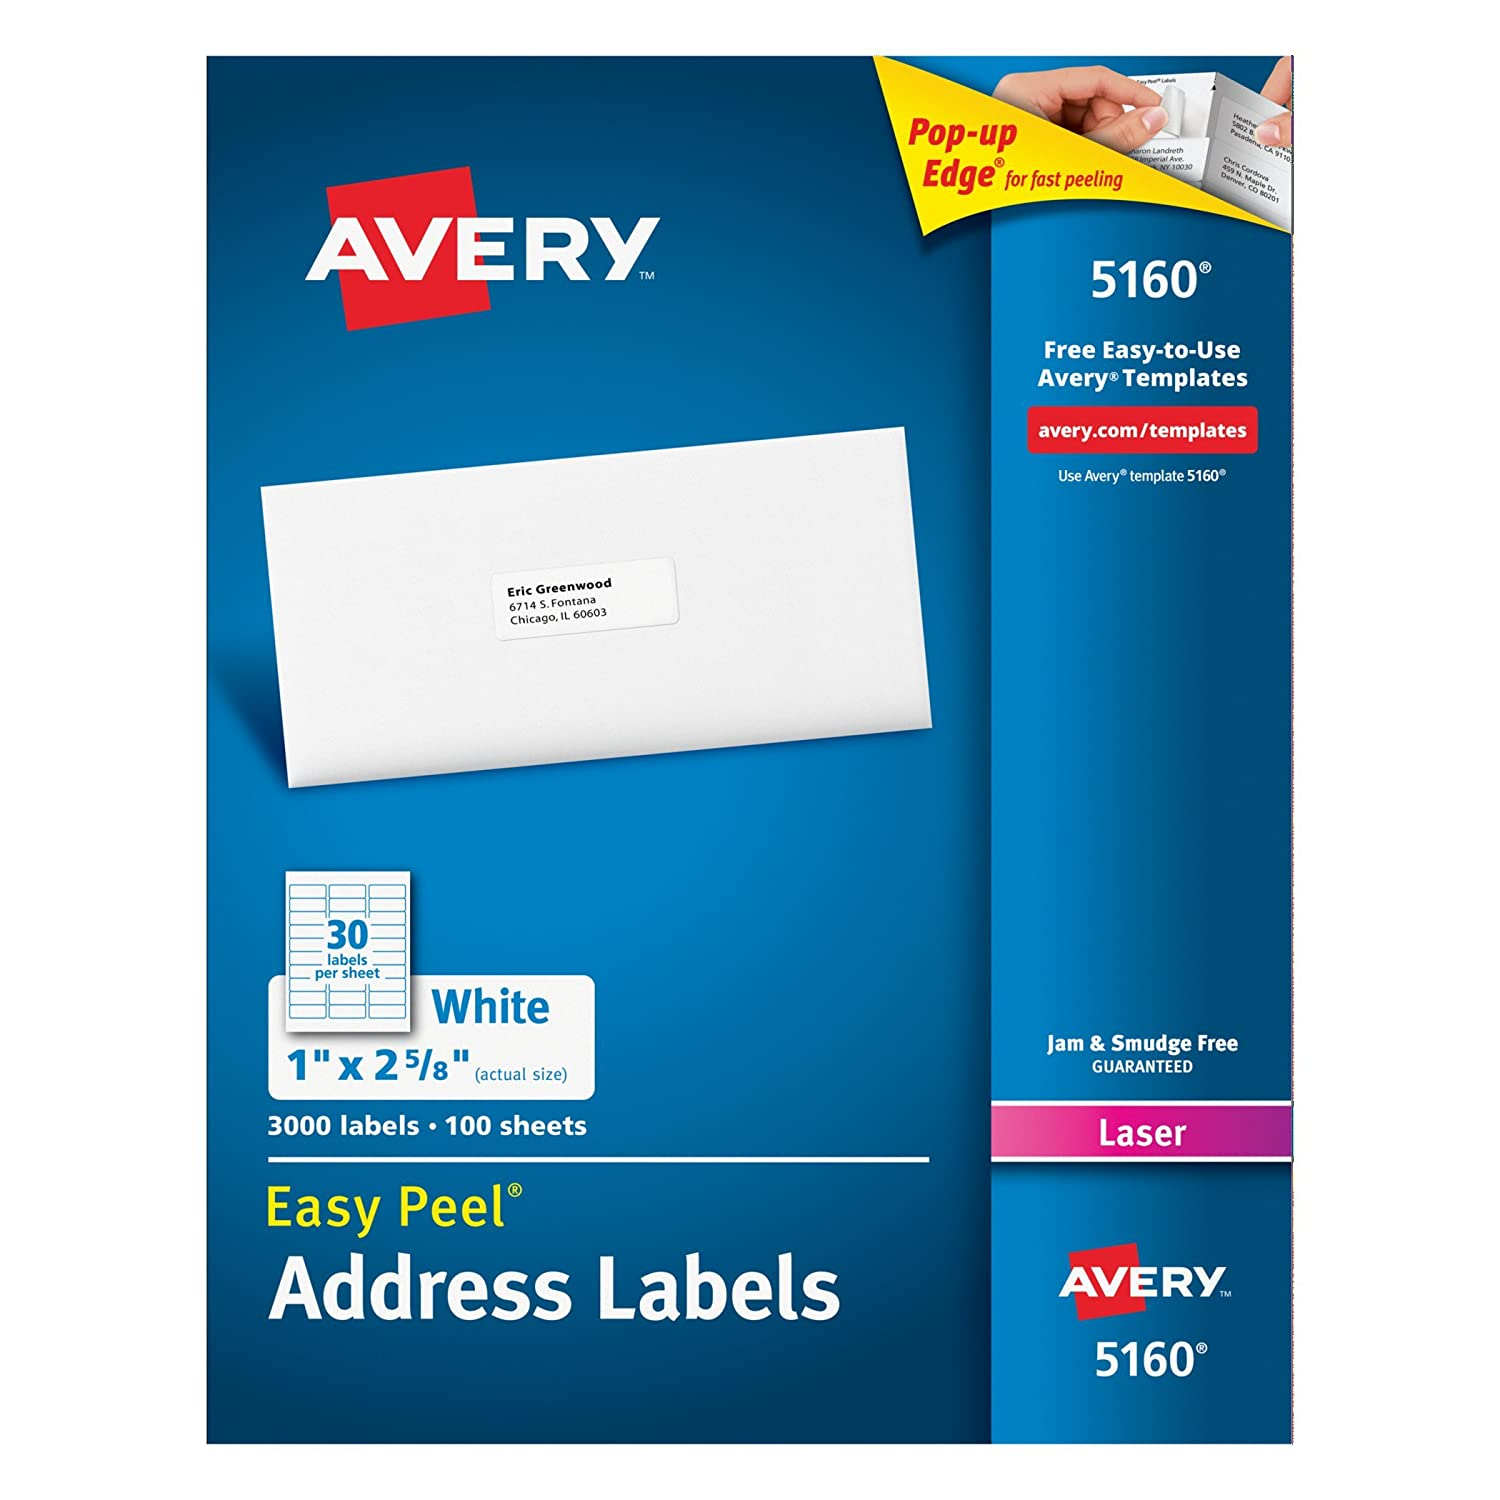 Amazon.com : Avery Easy Peel Address Labels for Laser Printer, 1 x ...